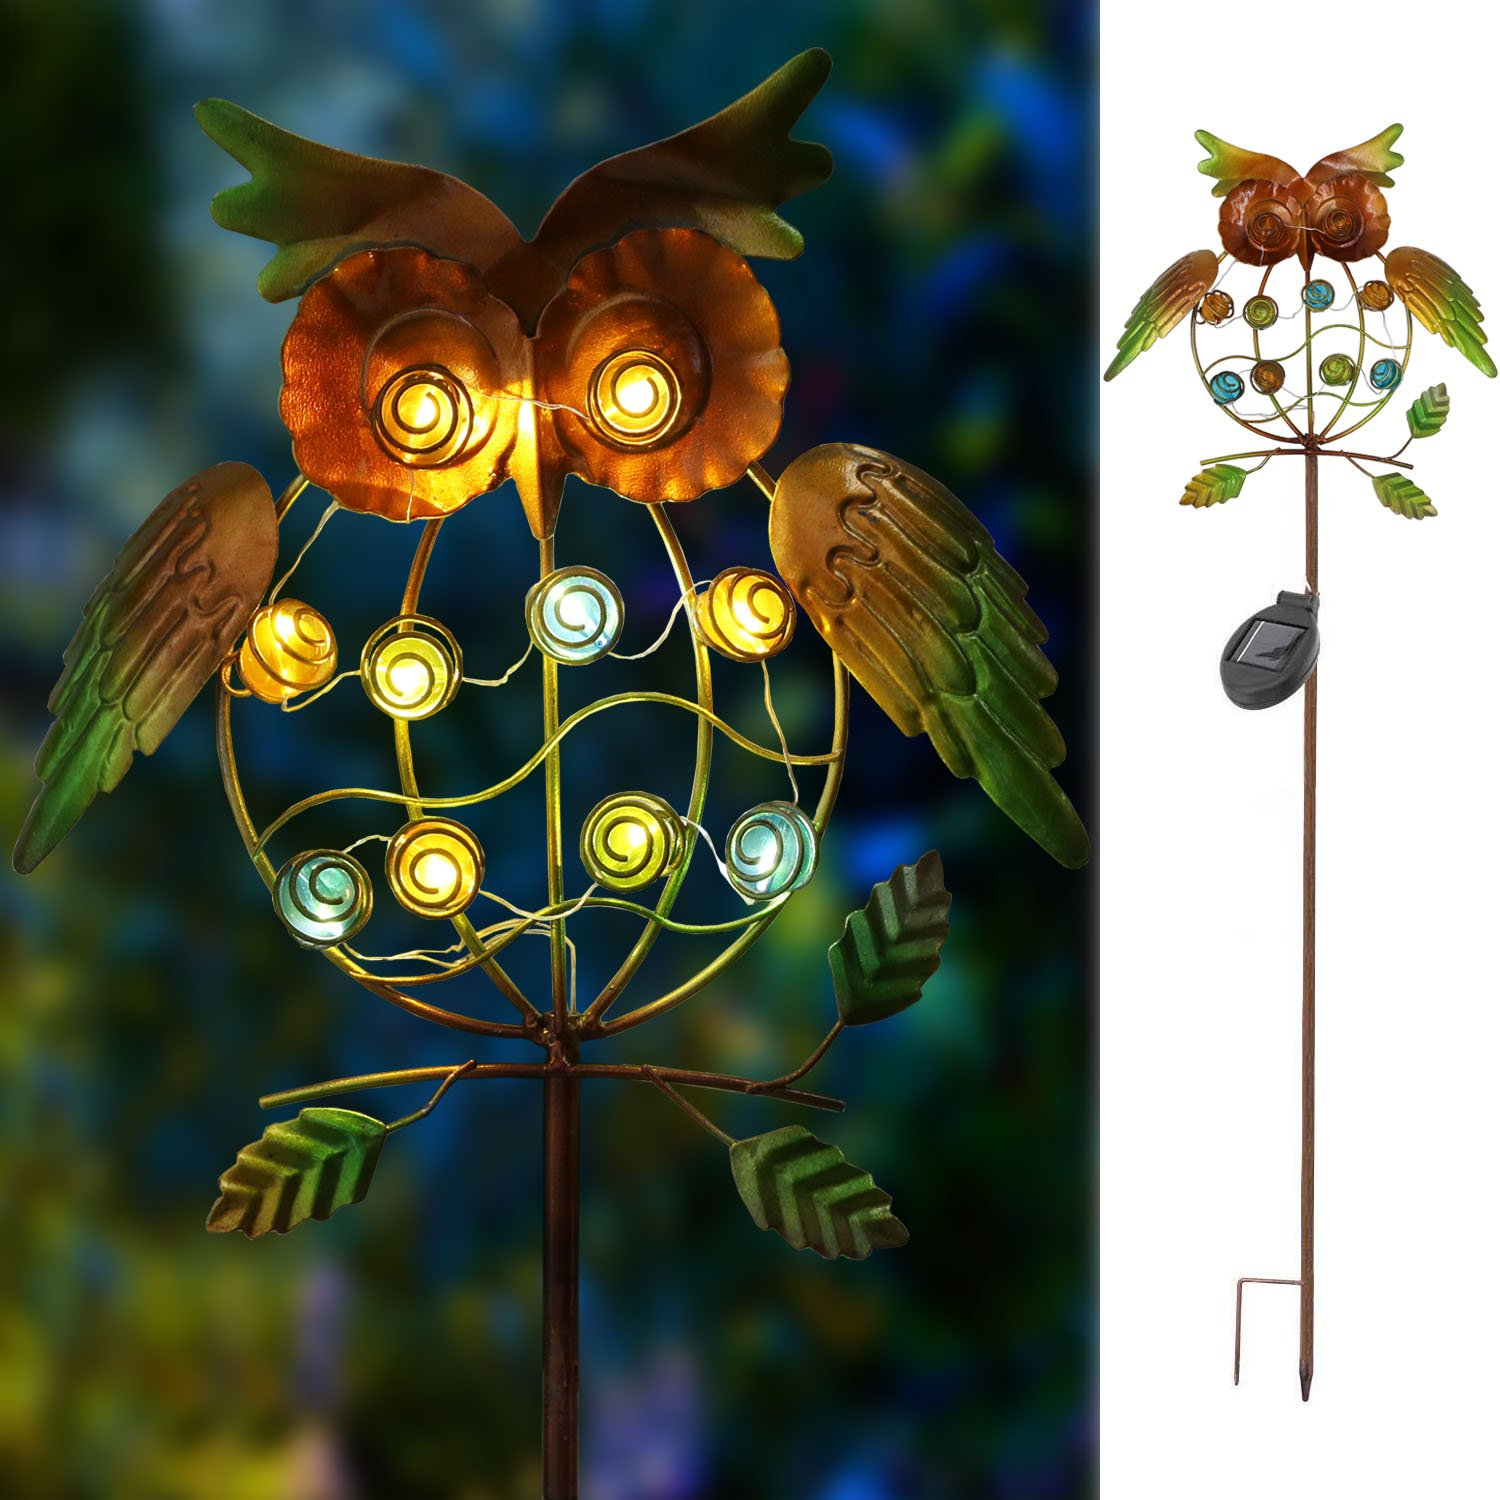 TAKE ME Garden Solar Lights Outdoor,Solar Powered Stake Lights - Metal OWL LED Decorative Garden Lights for Walkway,Pathway,Yard,Lawn (Multicolor) (Green Owl)